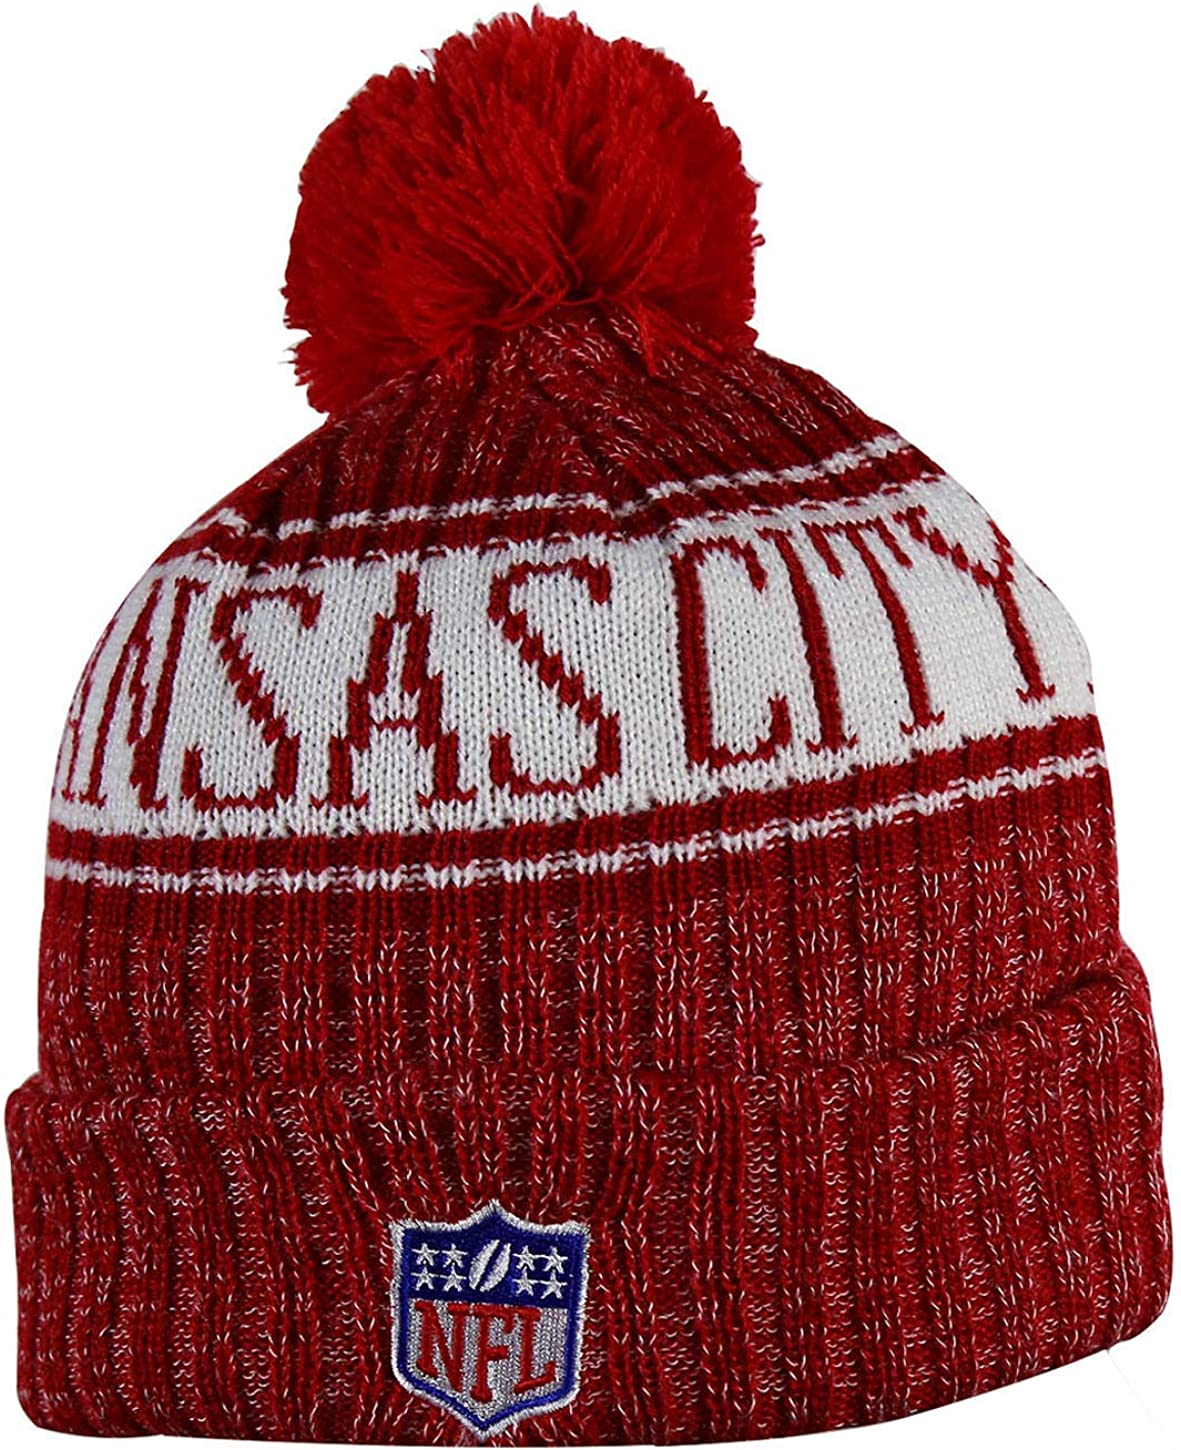 KC Adult Winter Knit Beanie Hat With Removable Pom Pom One Size Fits Most Multicolor